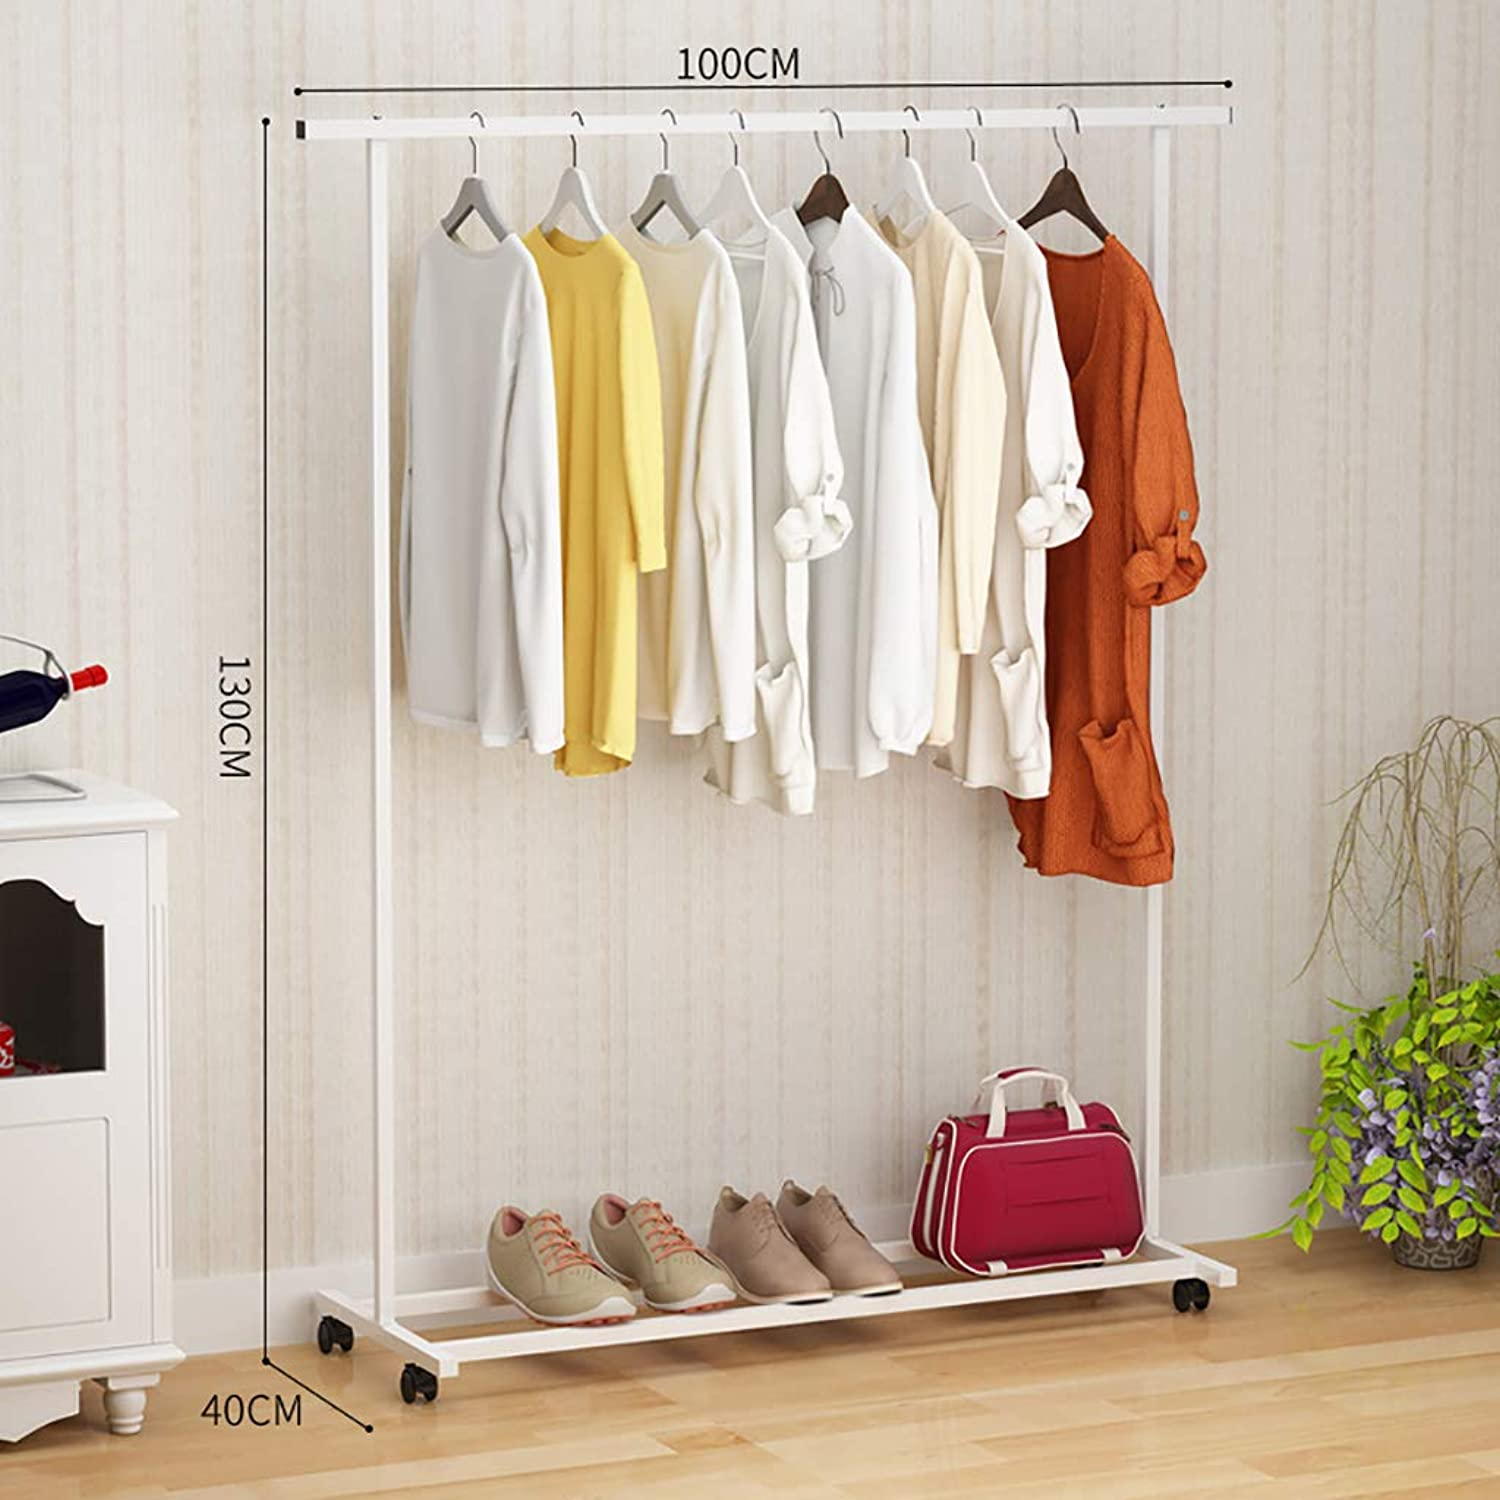 ZHBWJSH Coat Rack Simple greenical Hanging Clothes Rack Modern Simple Single Rod Hanger (color   D)